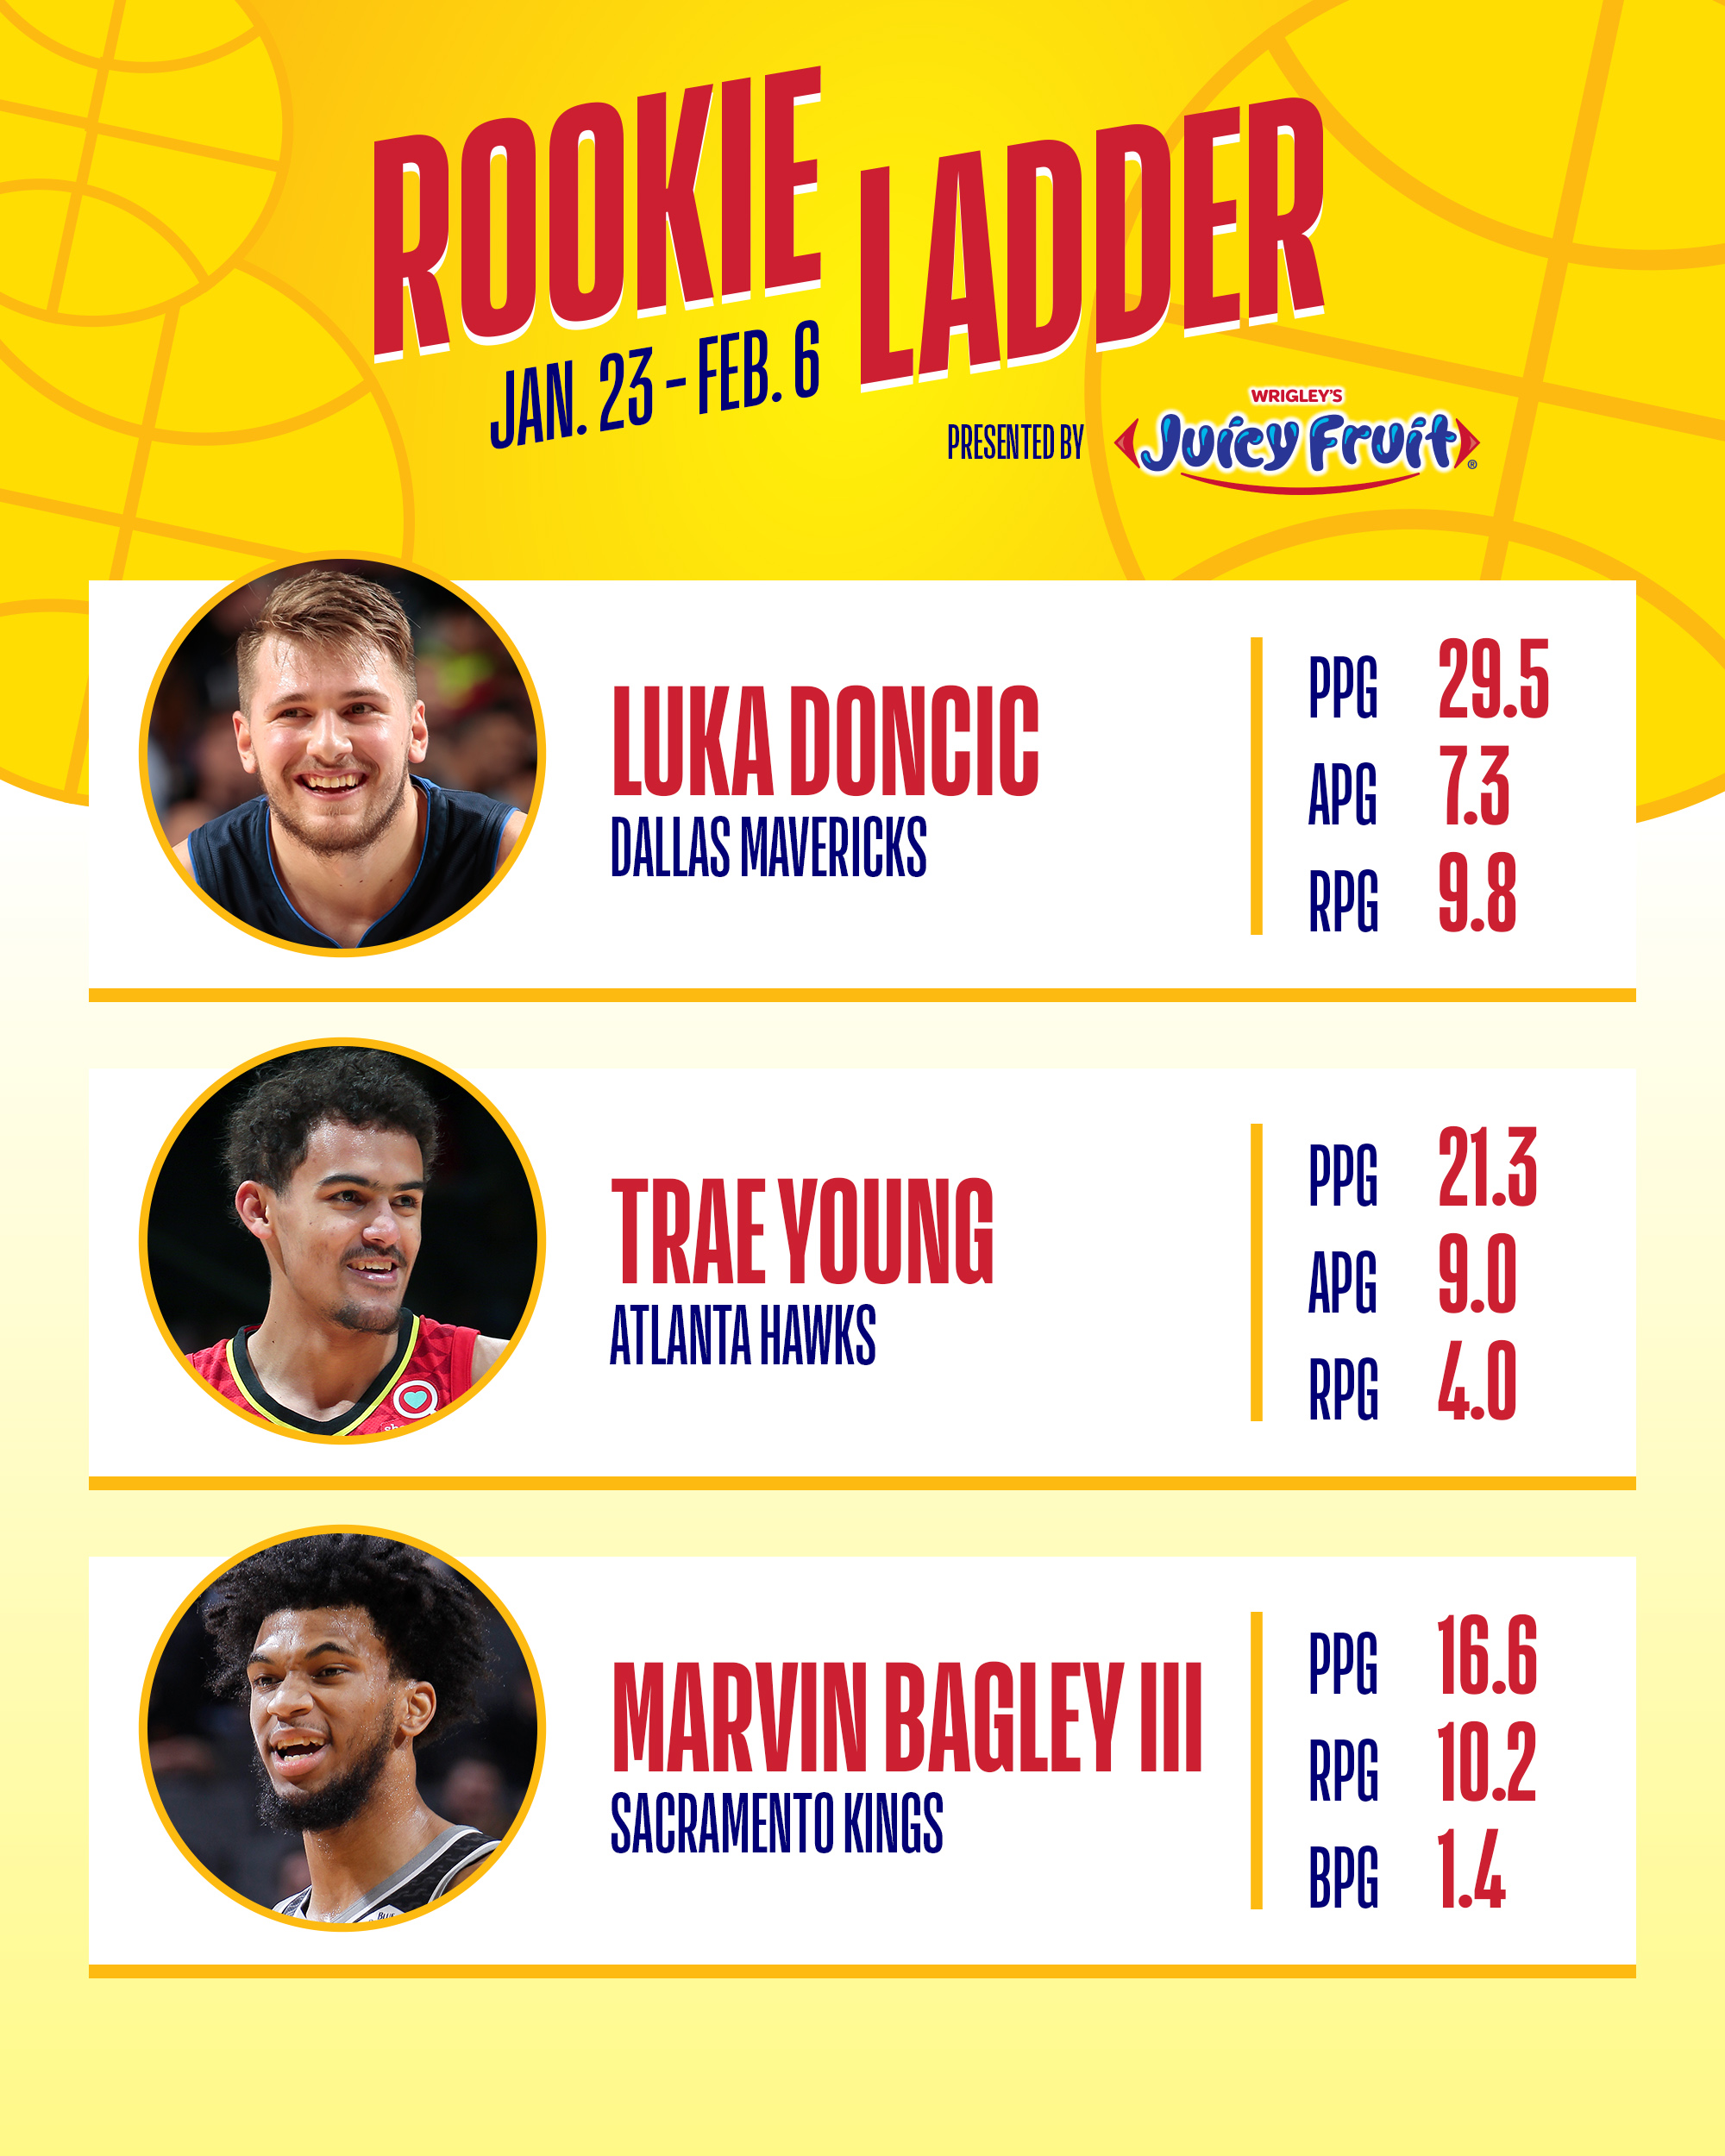 Nba Rookie Of The Year Power Rankings Luka Doncic Or Trae: NBA Rookie Ladder Presented By Juicy Fruit: Marvin Bagley